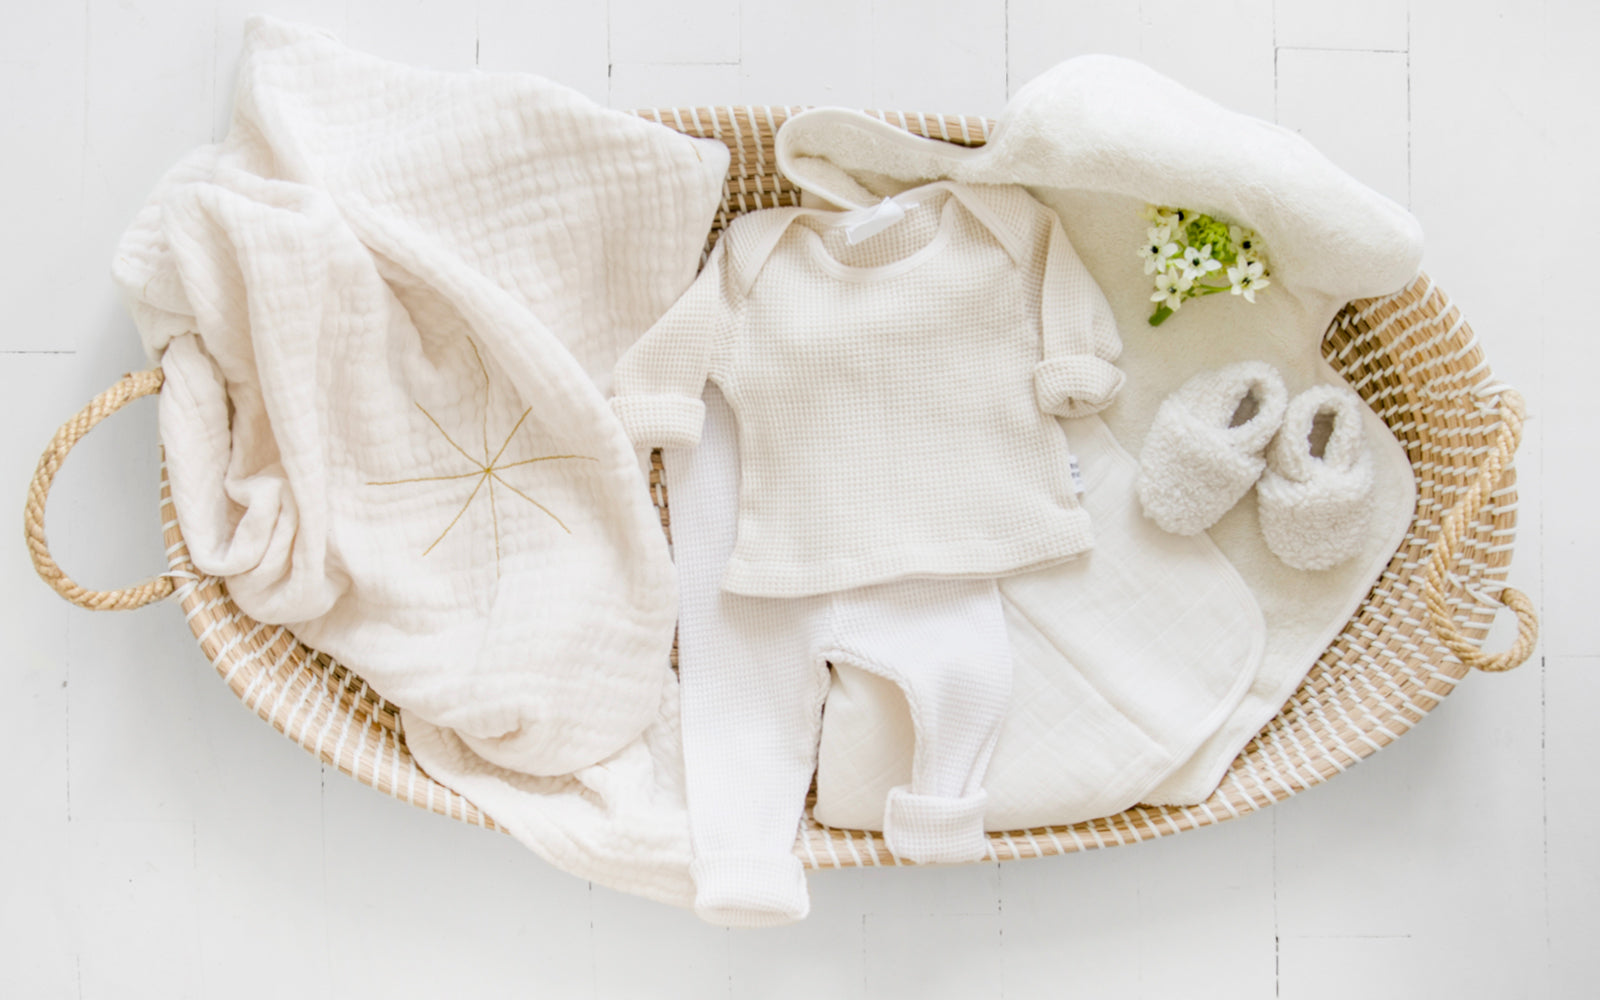 Cream coloured baby outfit and swaddle blanket in a woven changing basket.